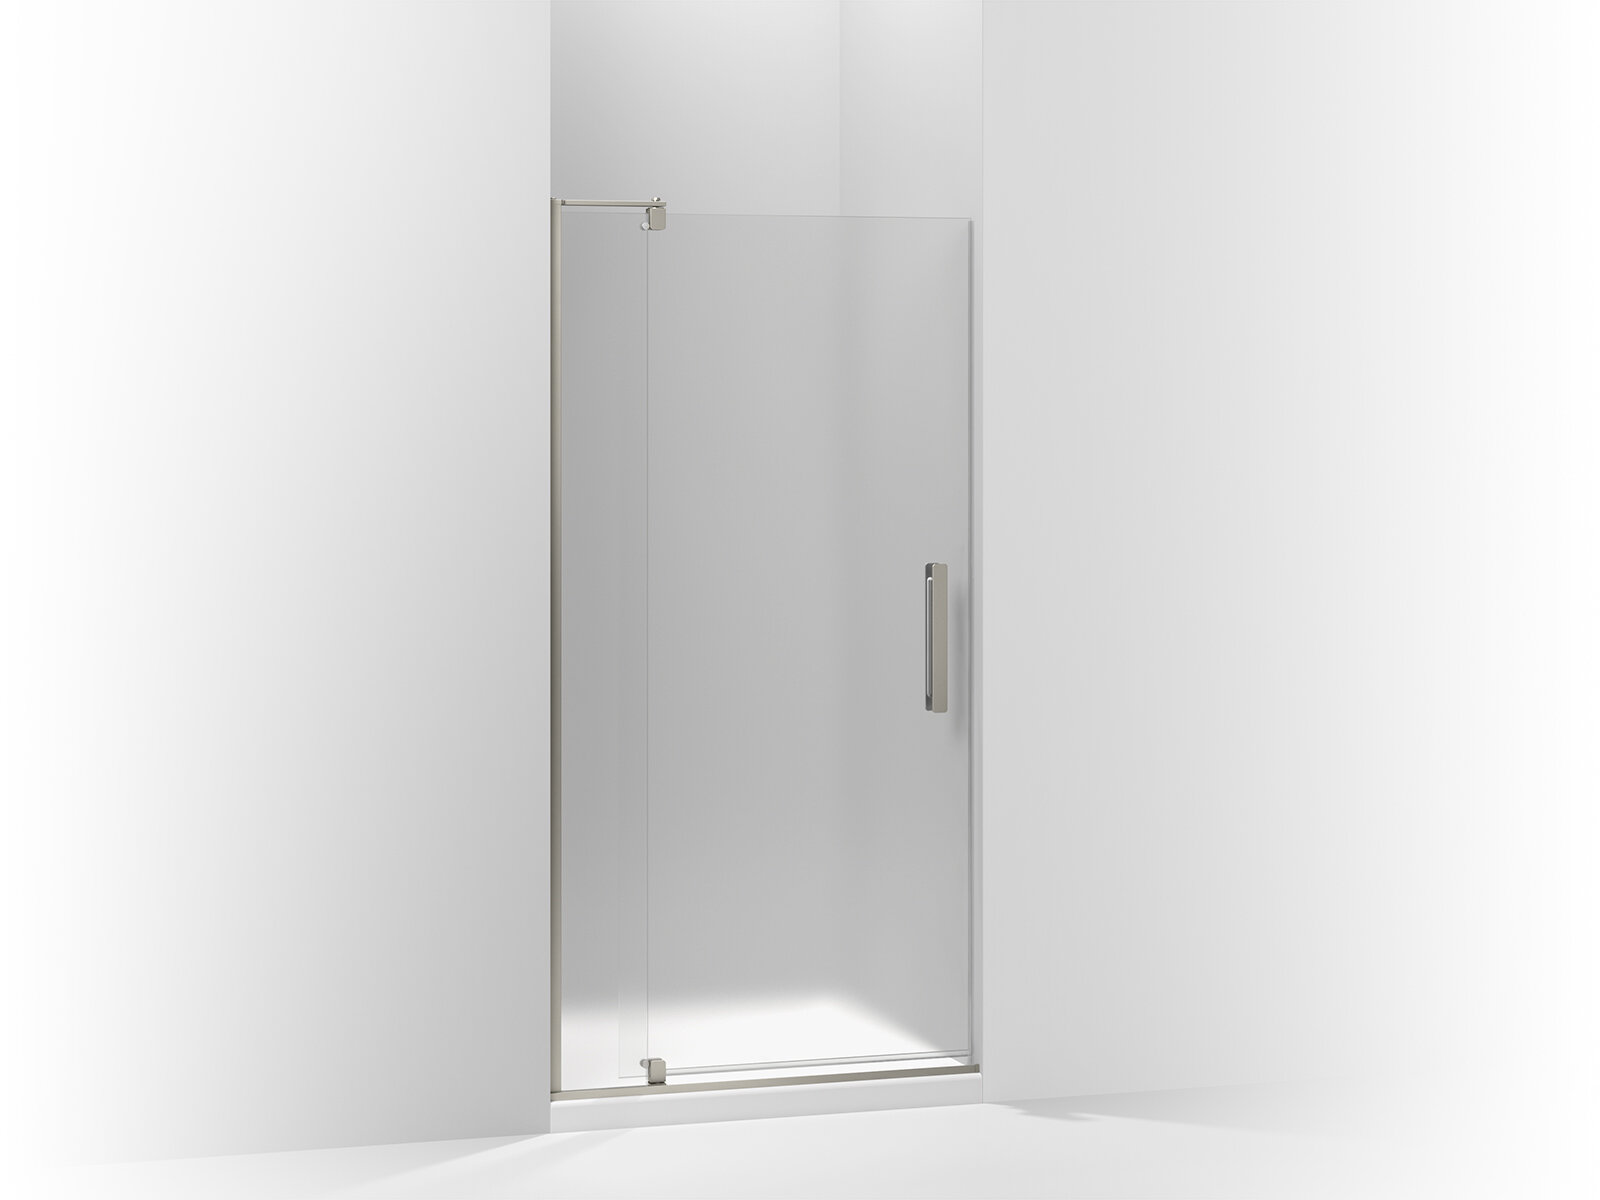 Kohler Revel Pivot Shower Door 70 H X 35 125 40 W With 0 3125 Thick Frosted Glass